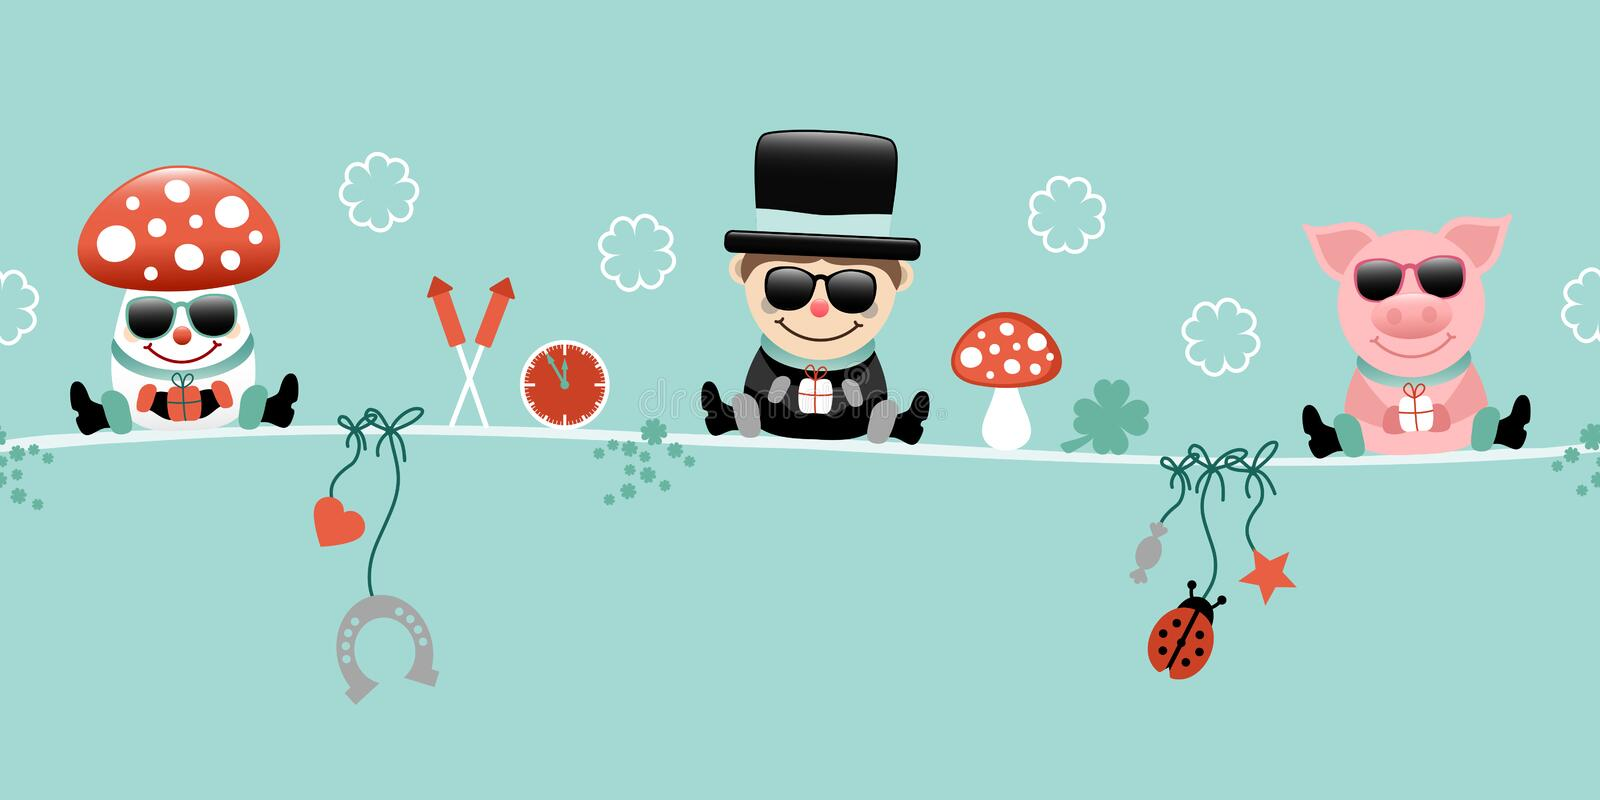 Fly Agaric Chimney Sweep And Pig With Sunglasses Icons New Years Eve Turquoise. Cute Fly Agaric Chimney Sweep And Pig With Sunglasses Icons New Years Eve stock illustration